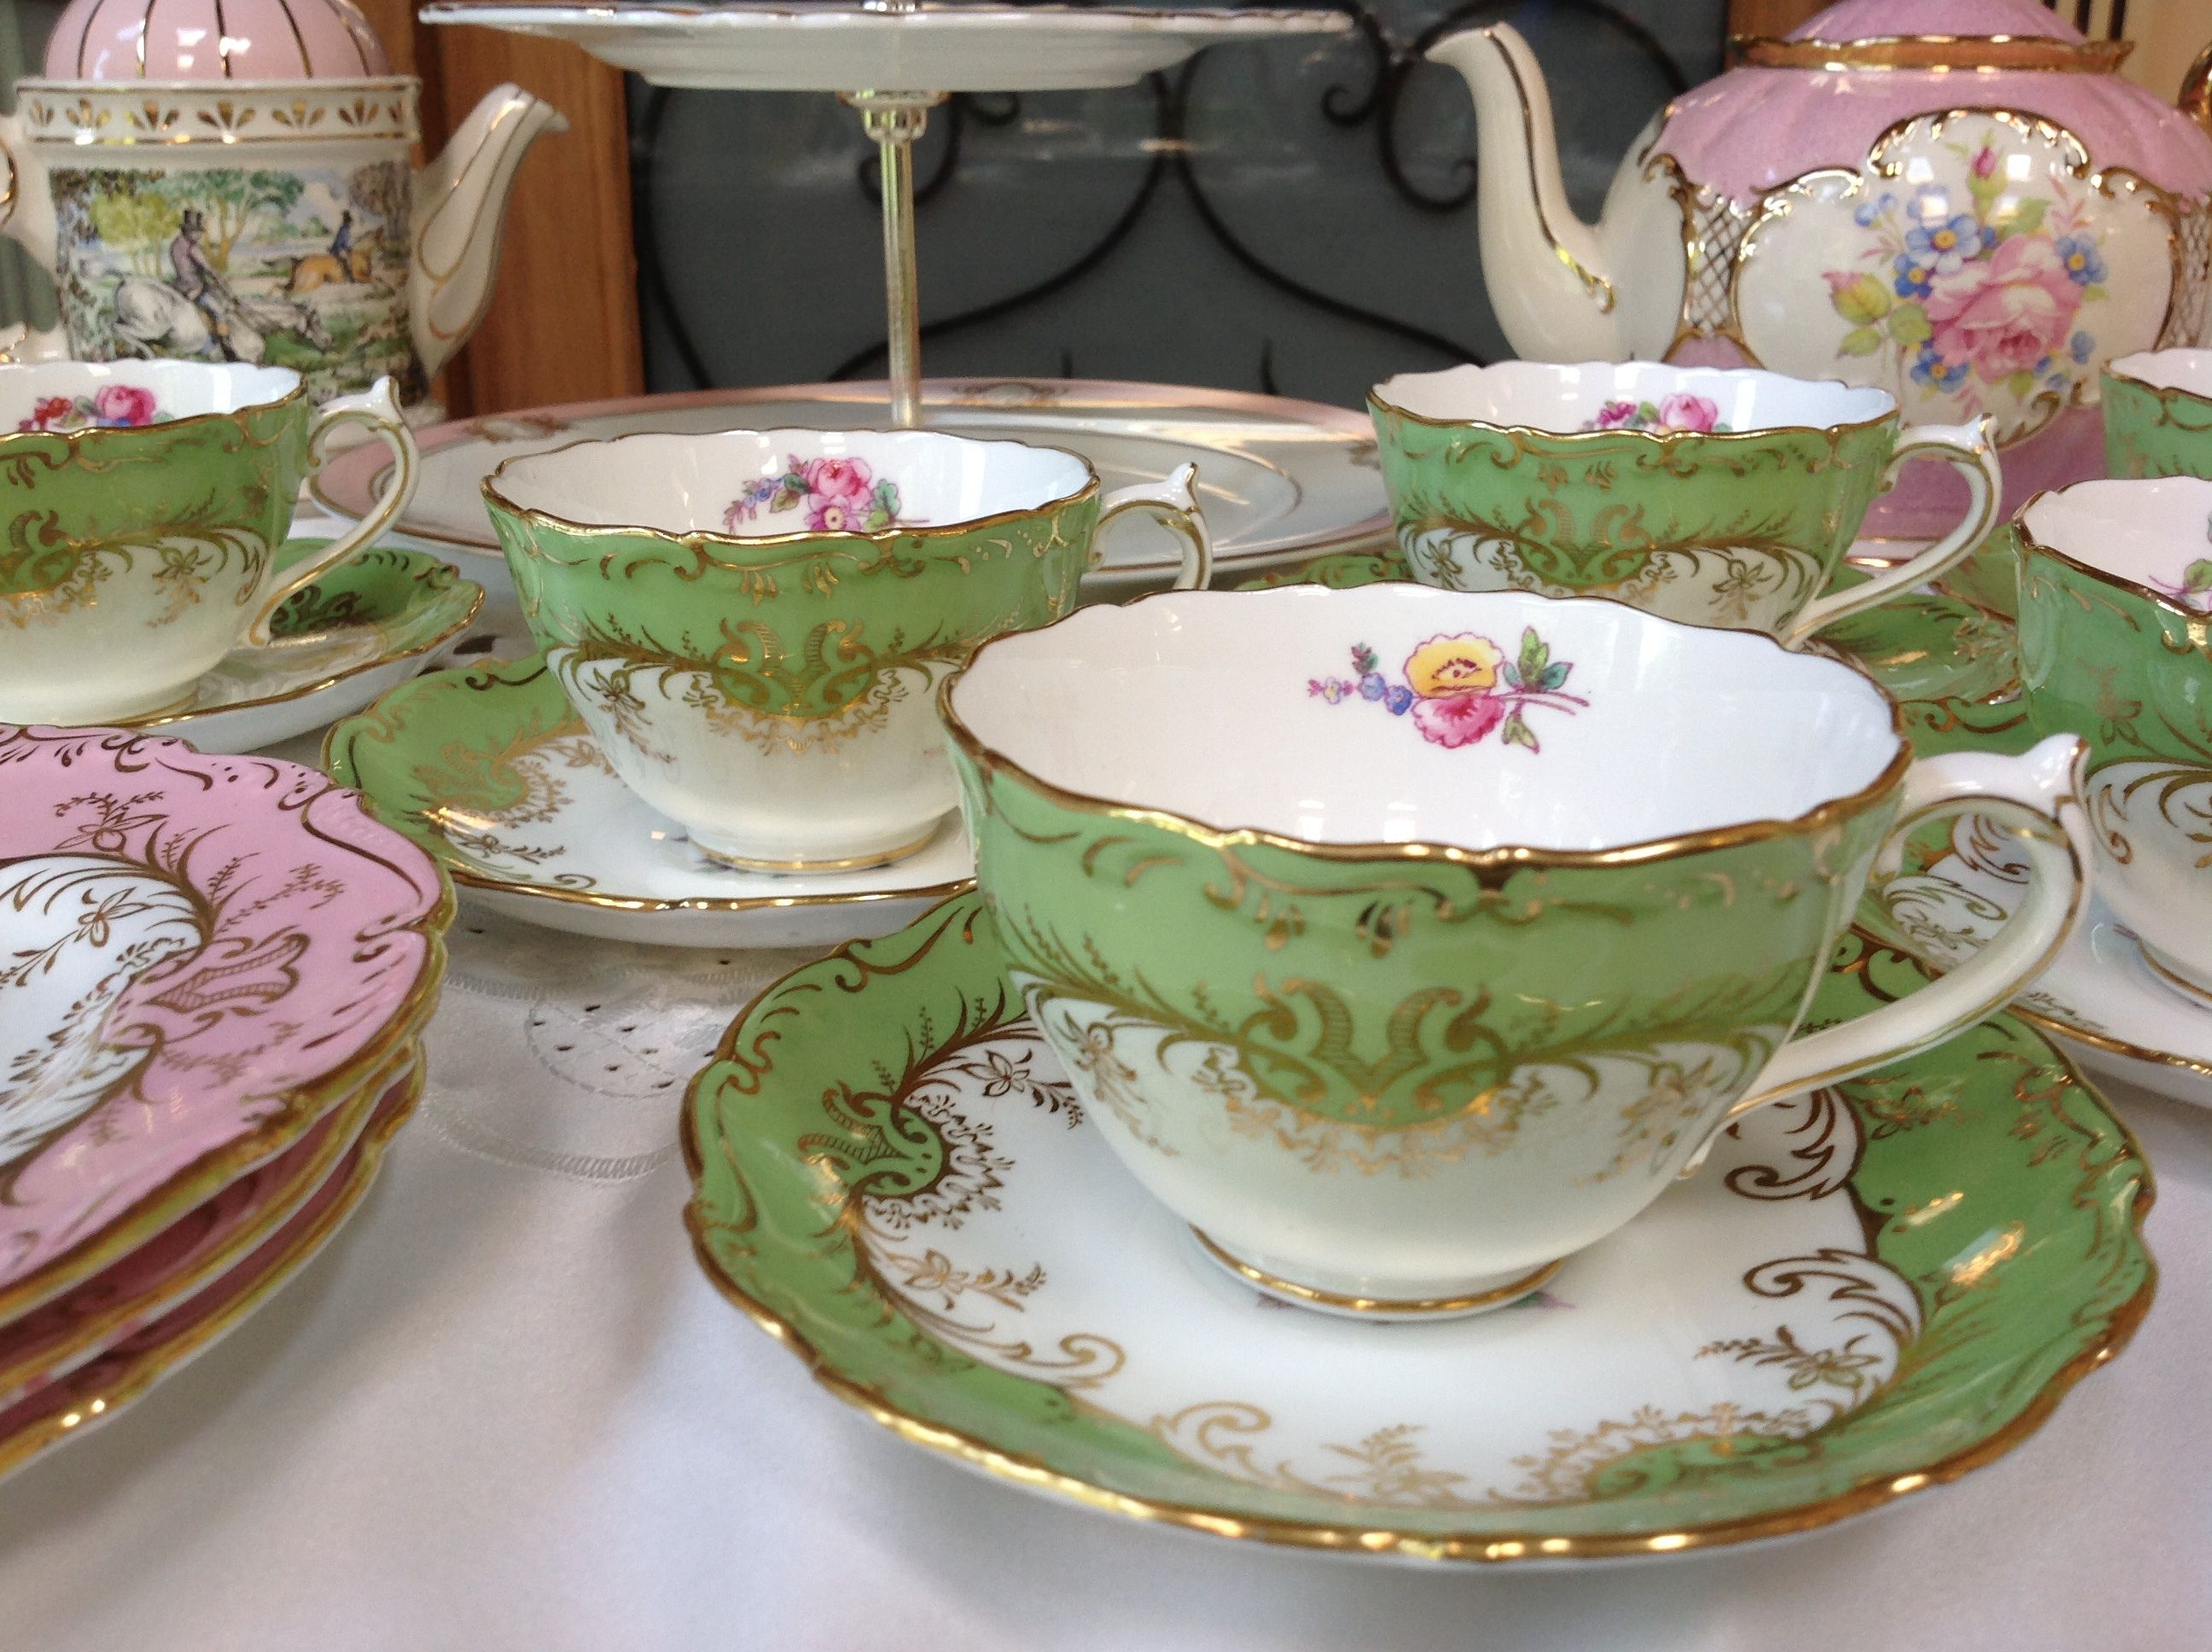 Tea Mugs For Sale Coalport Sandringham Green Vintage China Tea Cups And